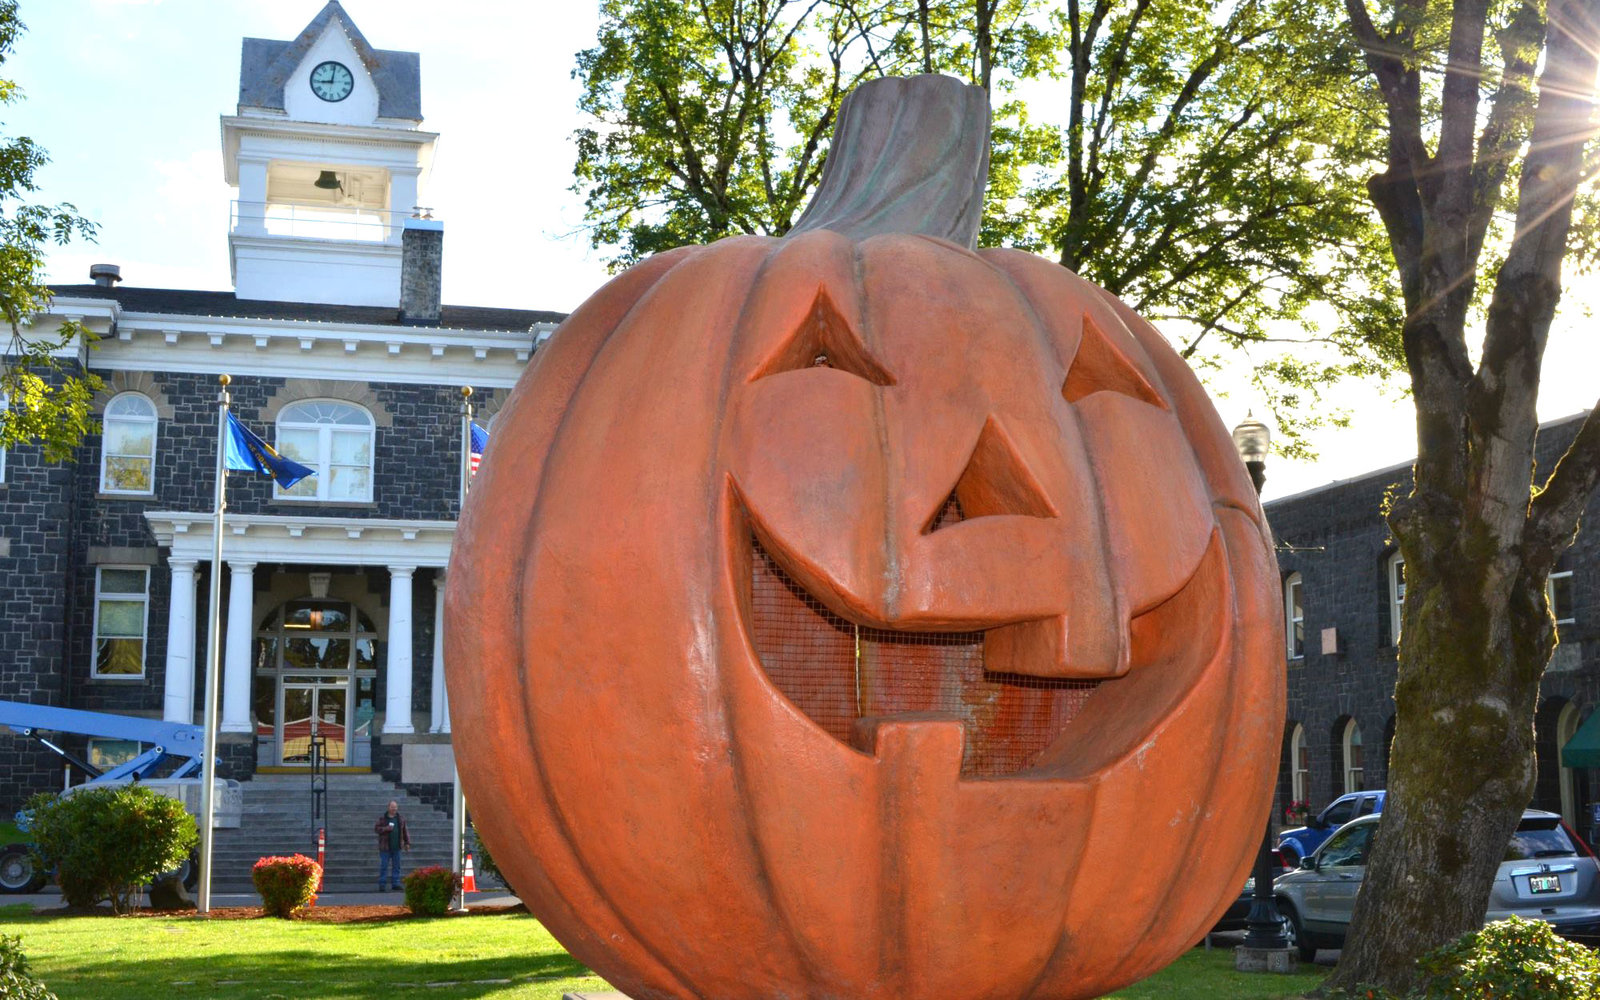 halloweentown is a real place this october | travel + leisure